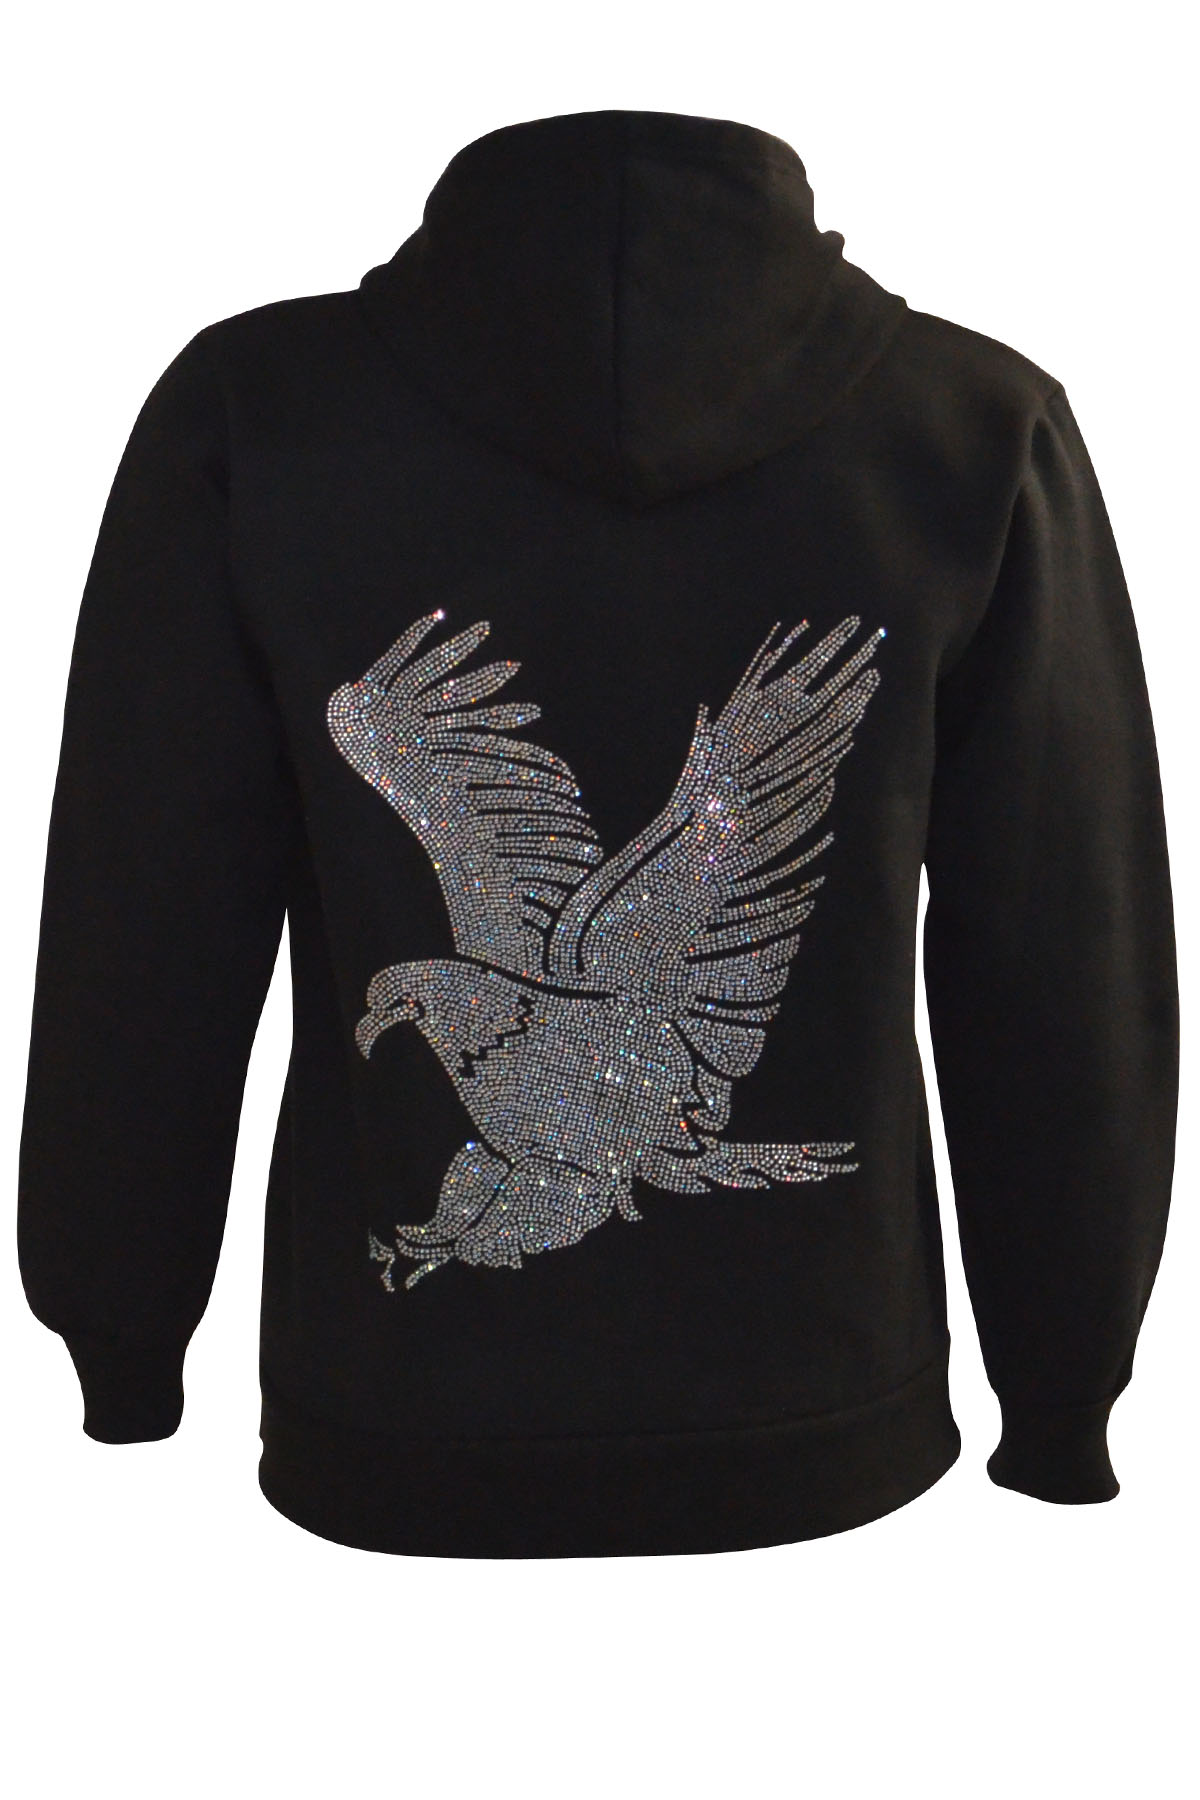 New Ladies Hoodie Plus Size Womens Studded Eagle ...